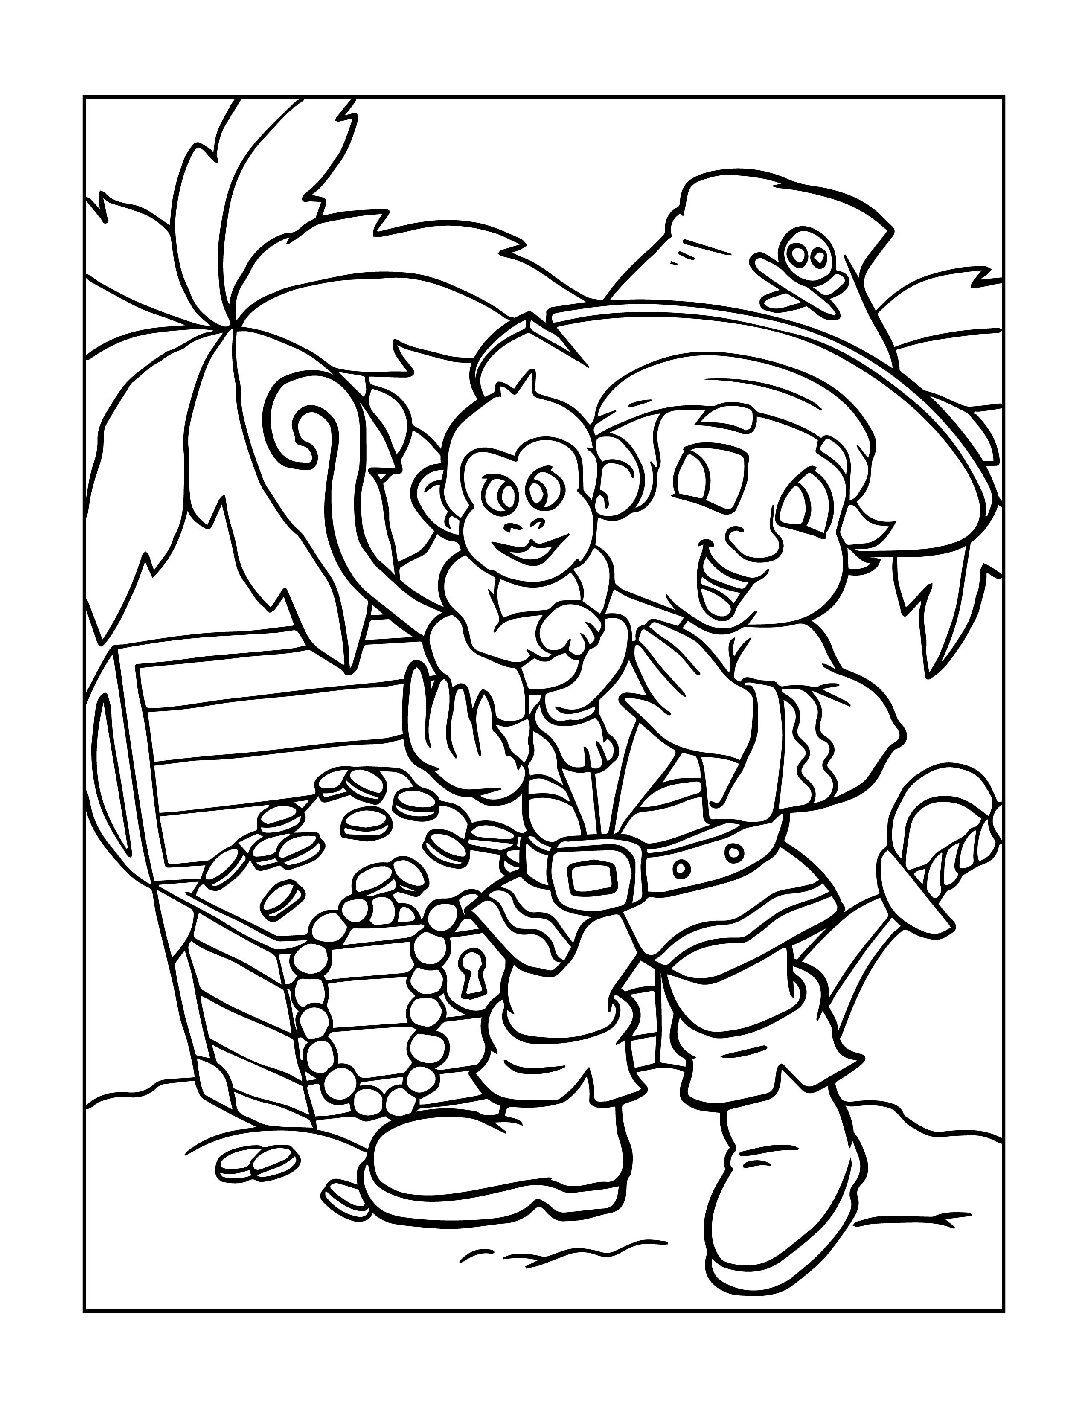 Coloring-Pages-Pirates-and-Knights-for-Boys-1-01-pdf Free Printable Pirates &  Knights Colouring Pages